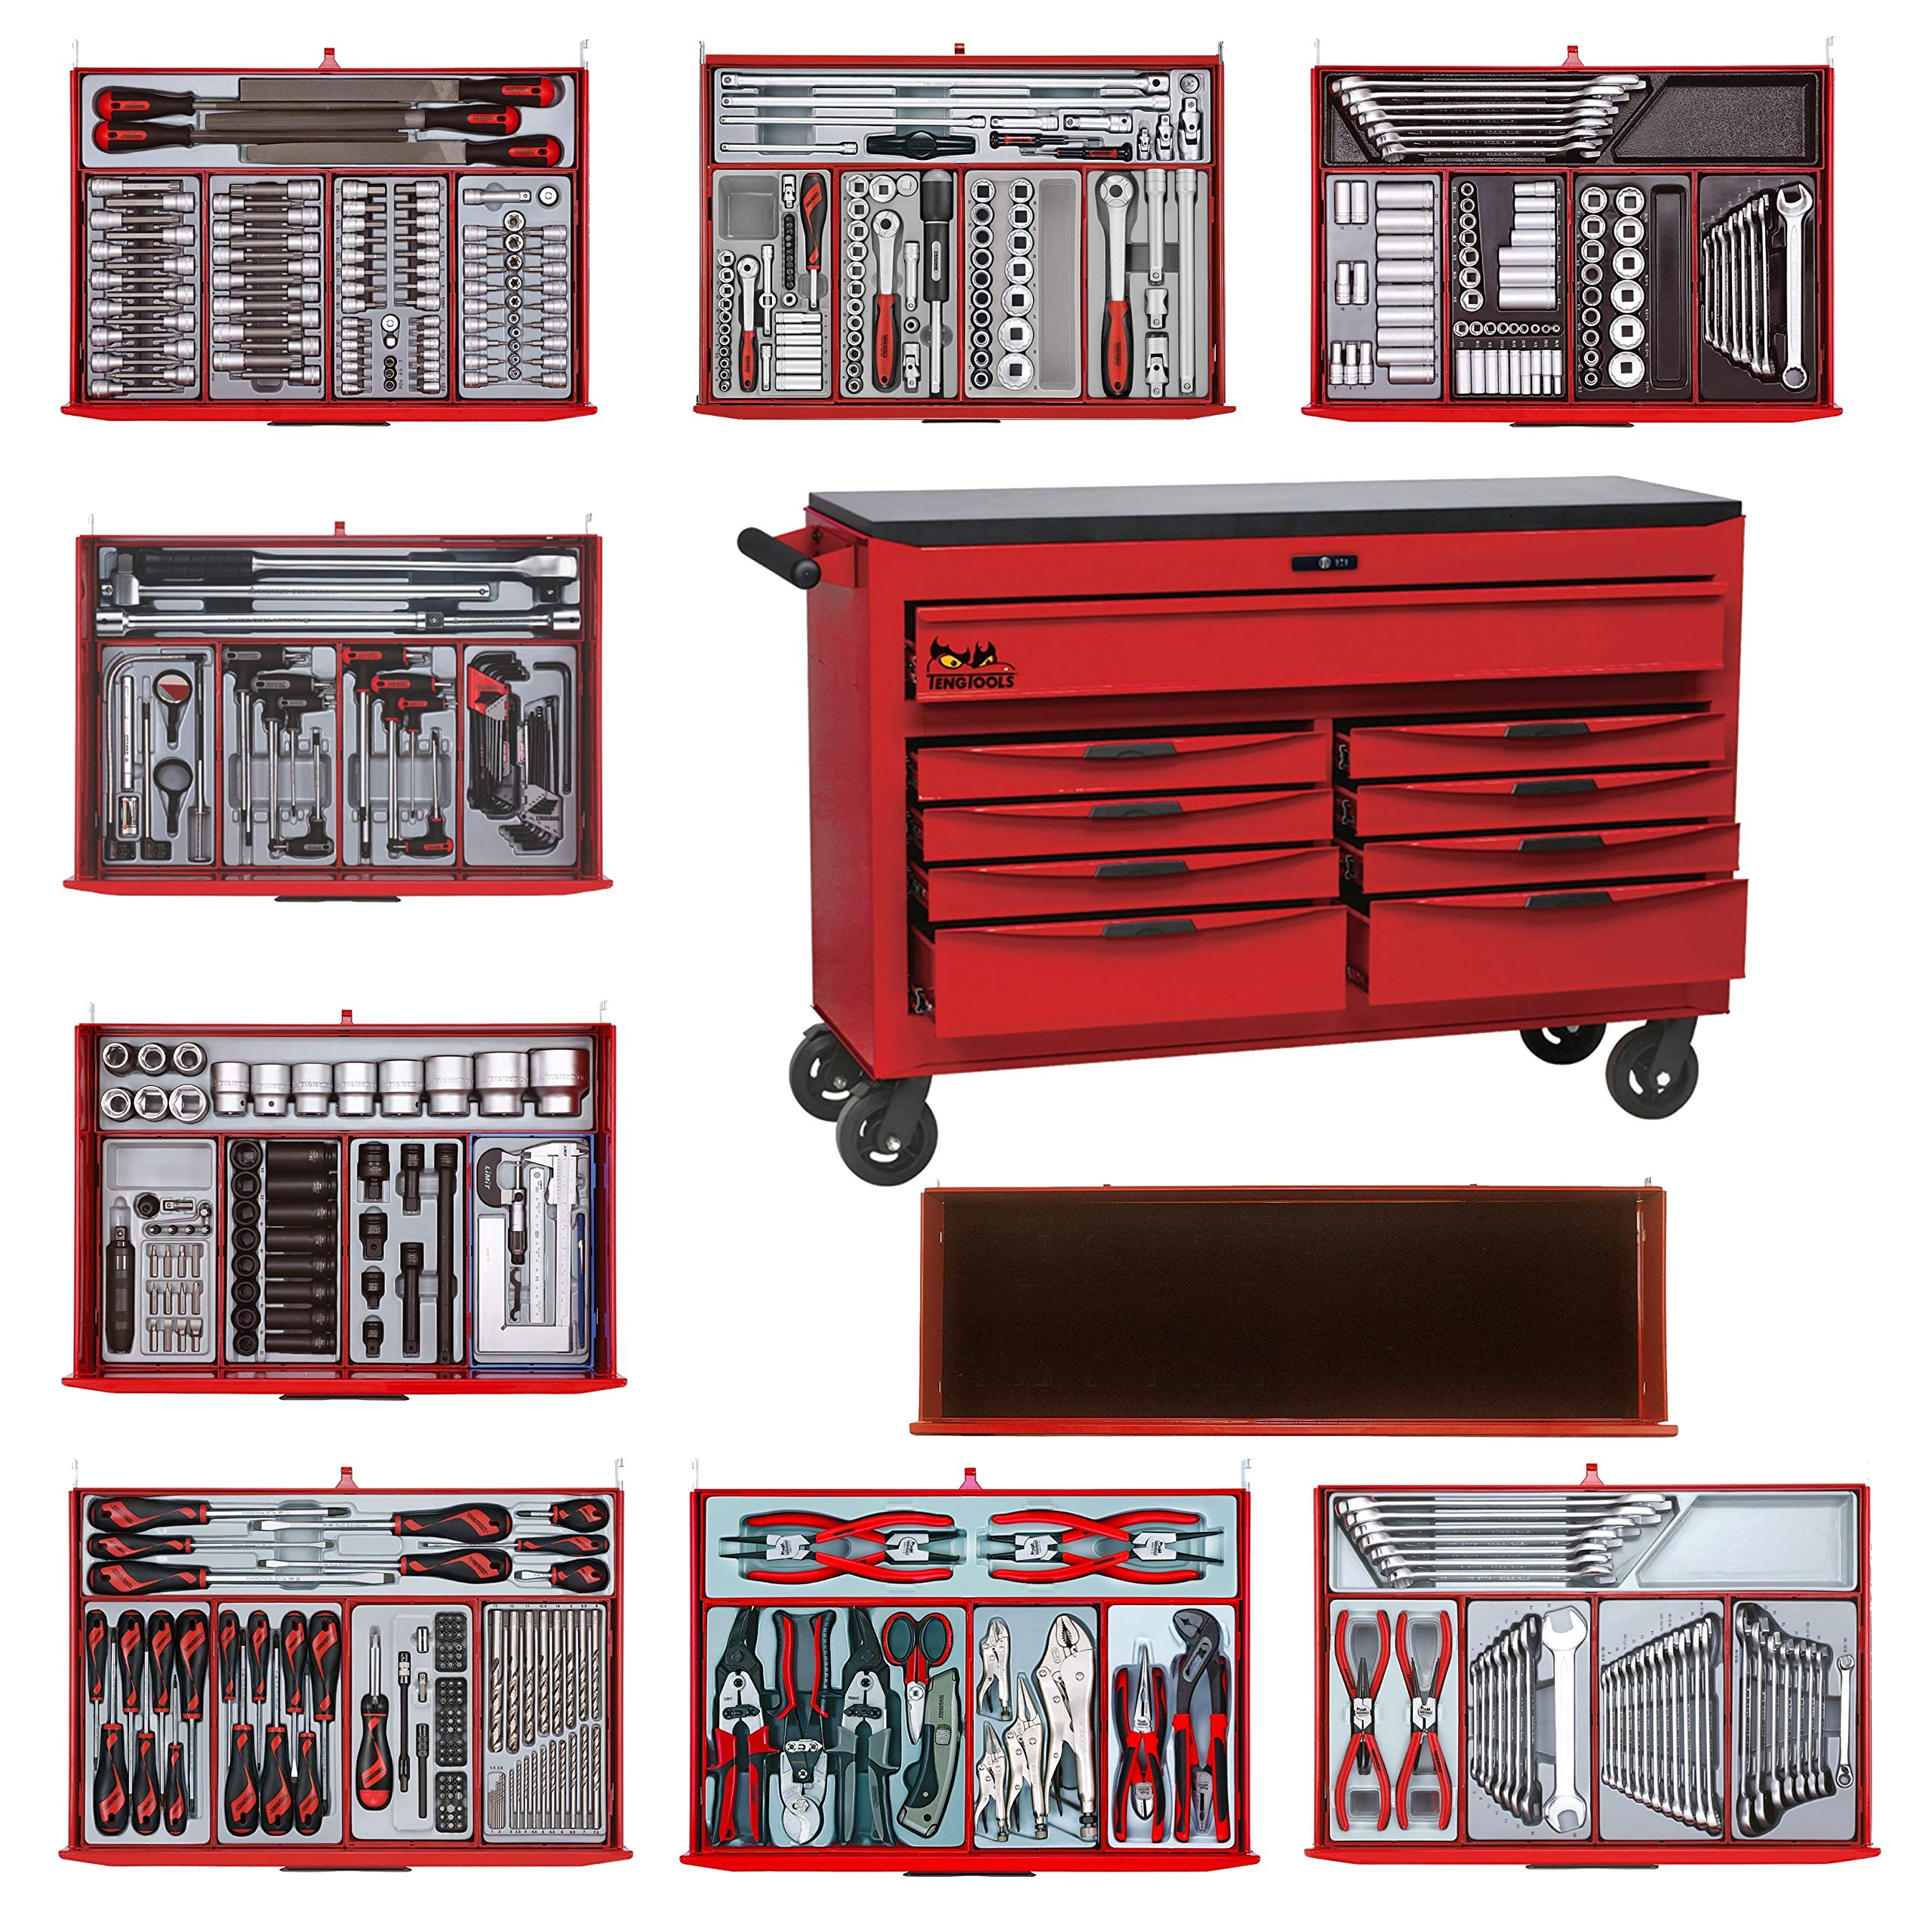 Teng Tools 569 Piece Complete Mixed Mega Master Hand Tool Kit with 53 Inch Wide Roller - TCMMIND08